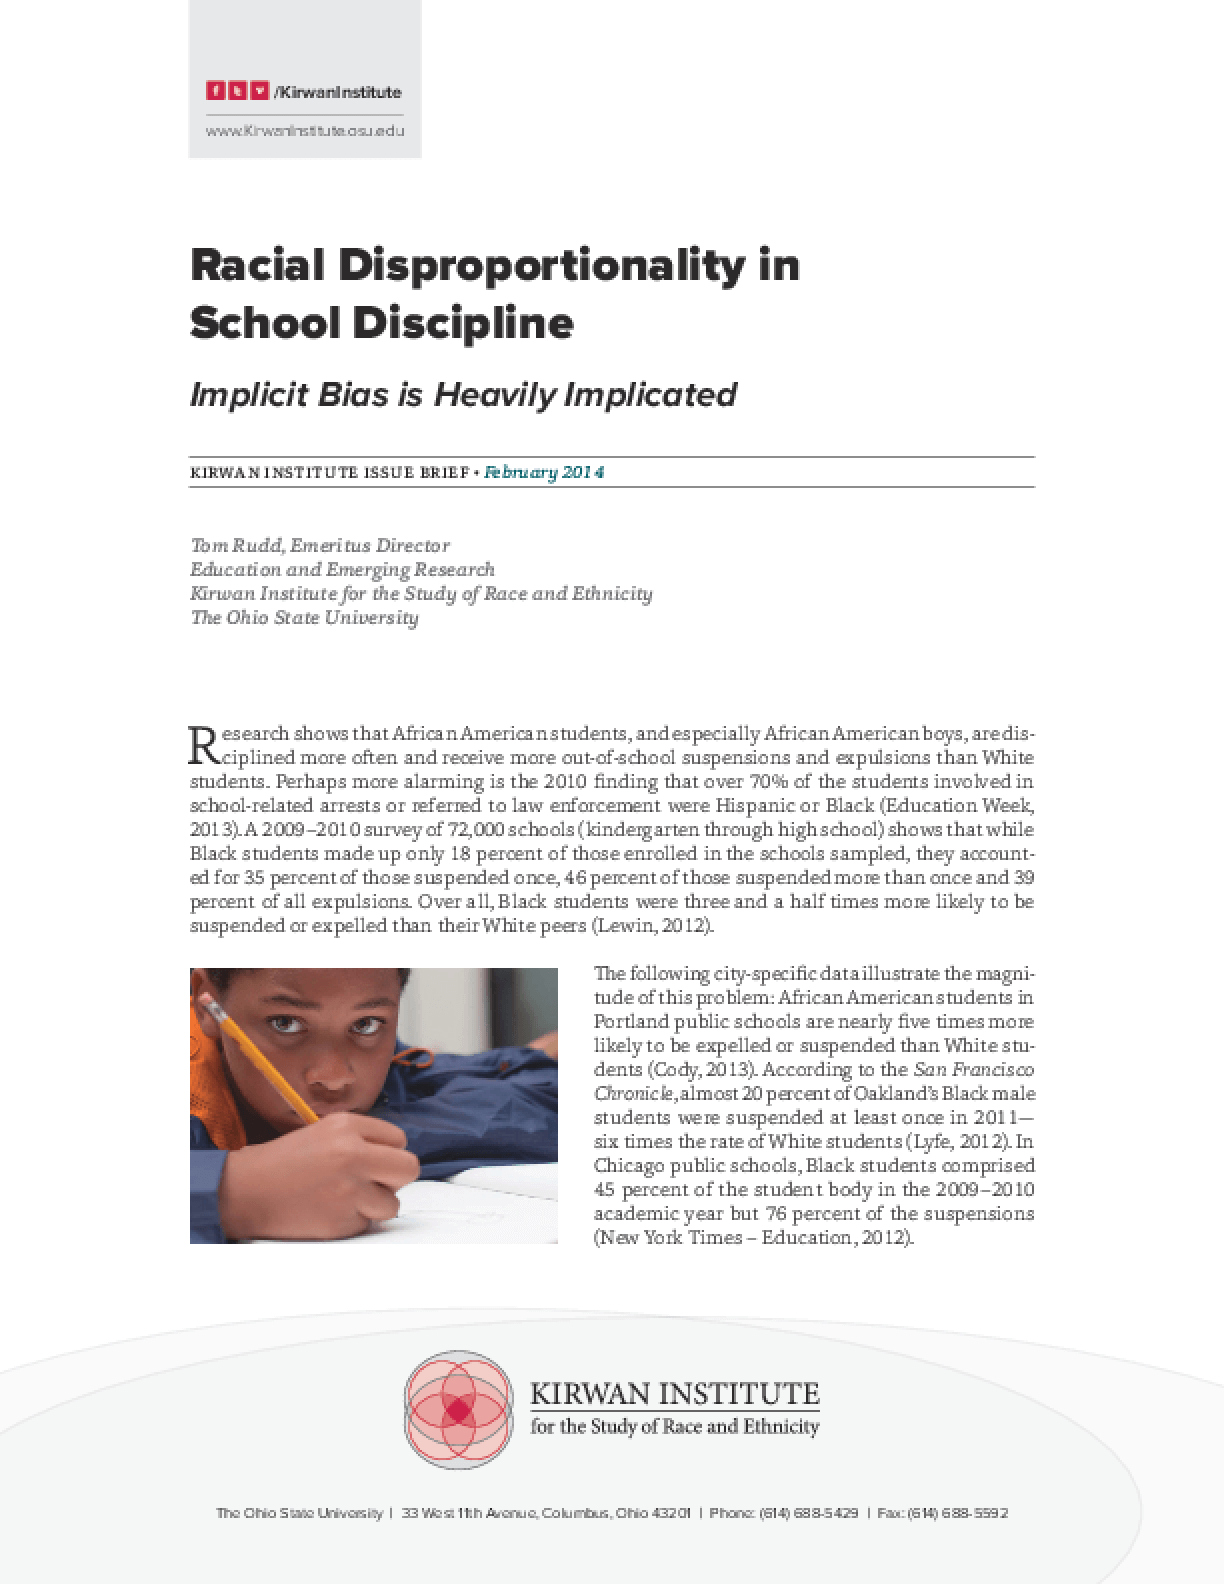 Racial Disproportionality in School Discipline: Implicit Bias is Heavily Implicated